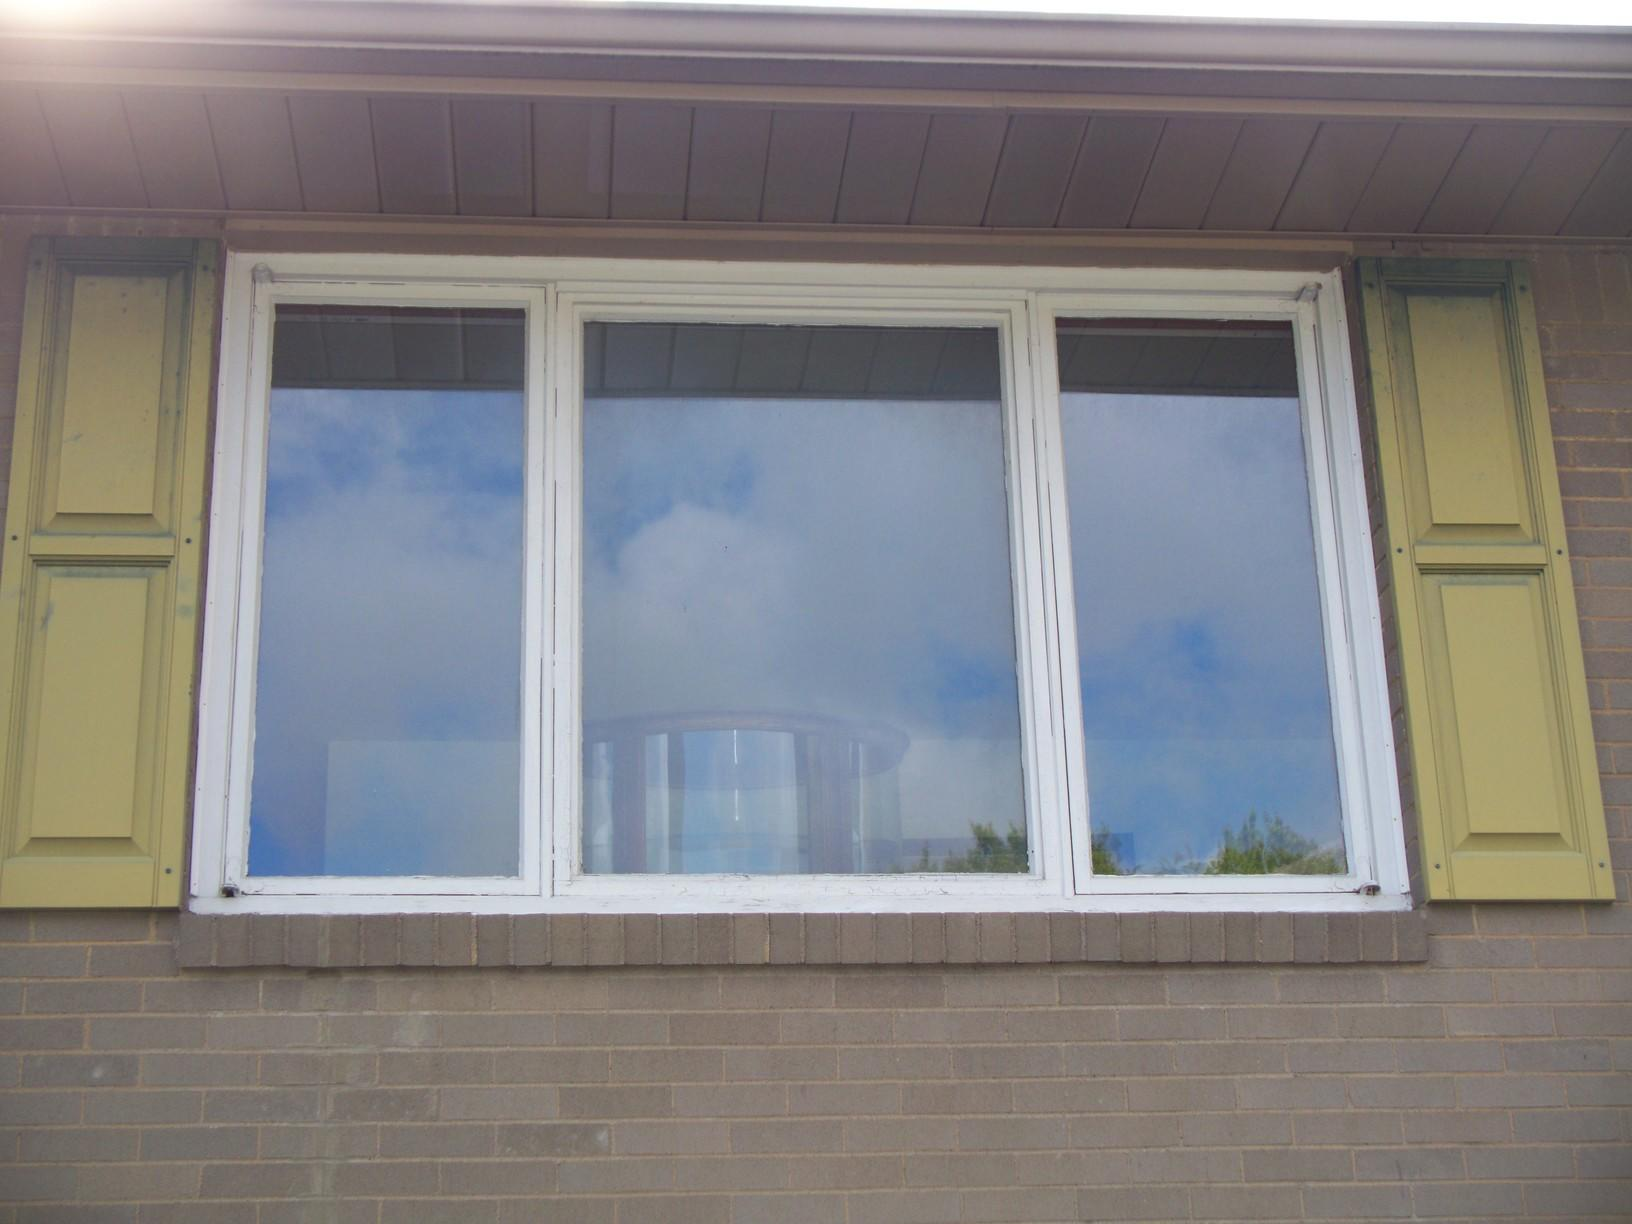 Three Panel Slider Window Replacement and Installation in Greensburg, PA - Before Photo